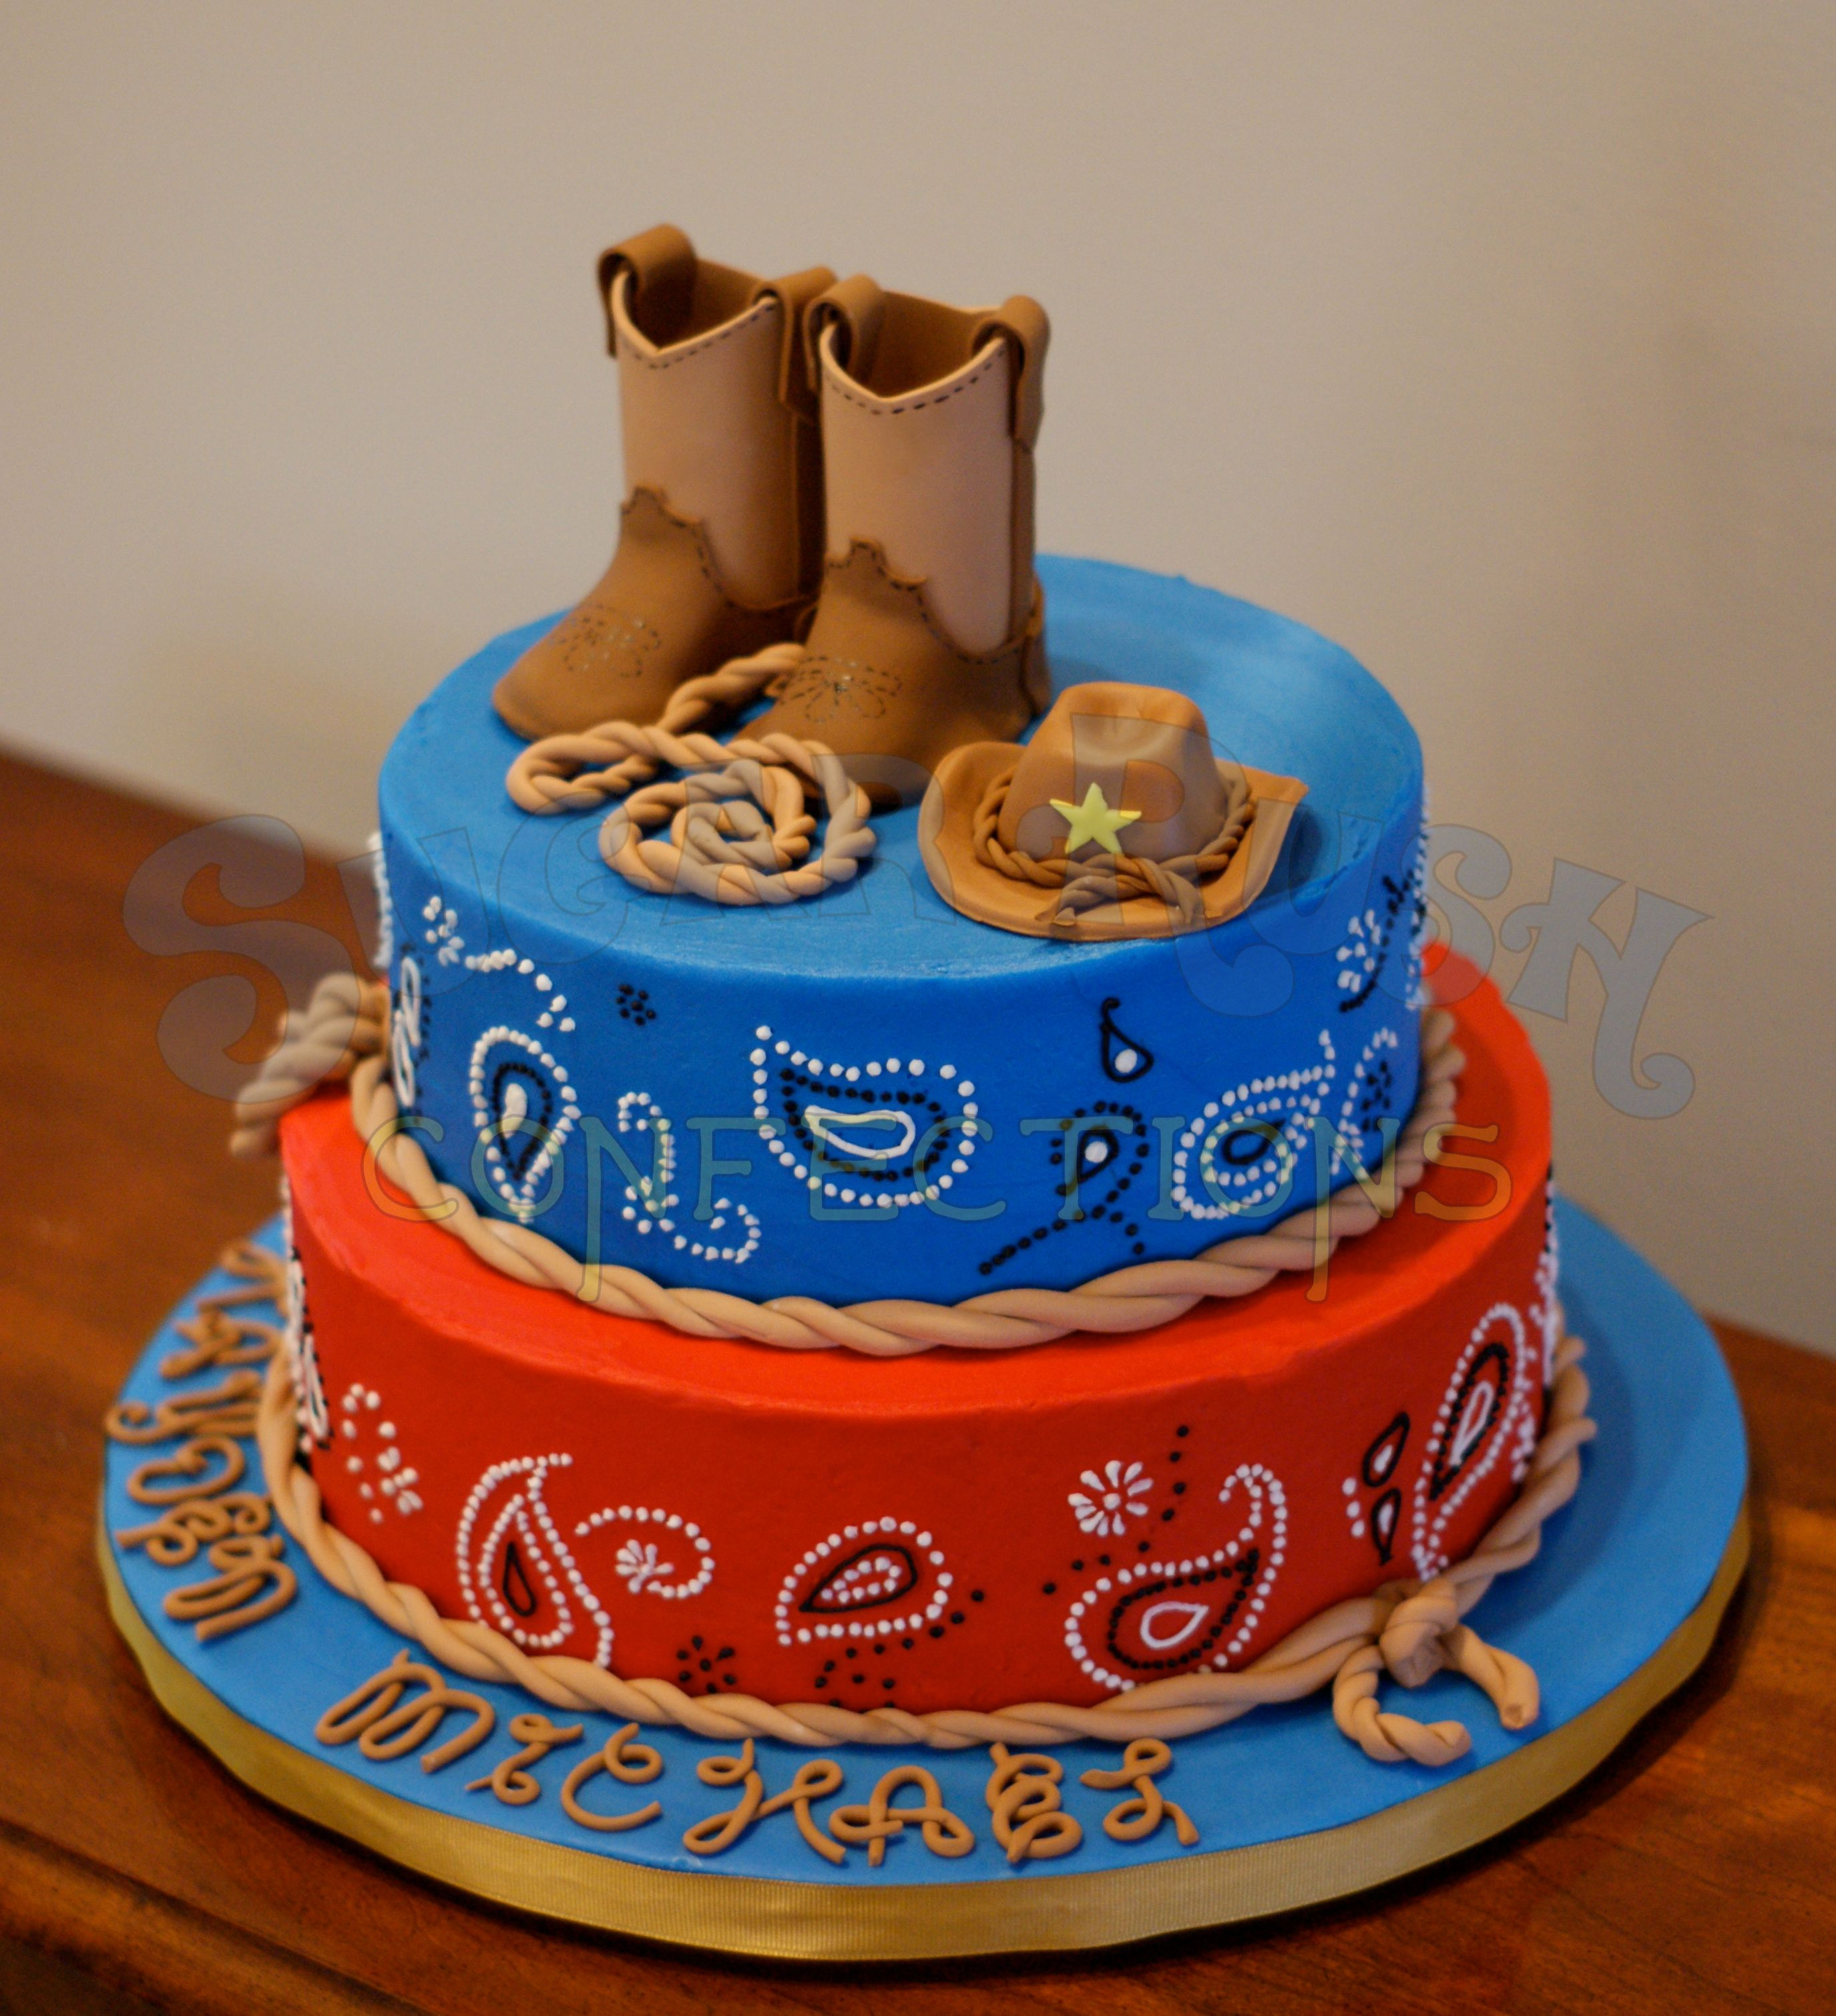 Magnificent Western Baby Shower Cake Cowboy Birthday Cakes Baby Shower Funny Birthday Cards Online Barepcheapnameinfo